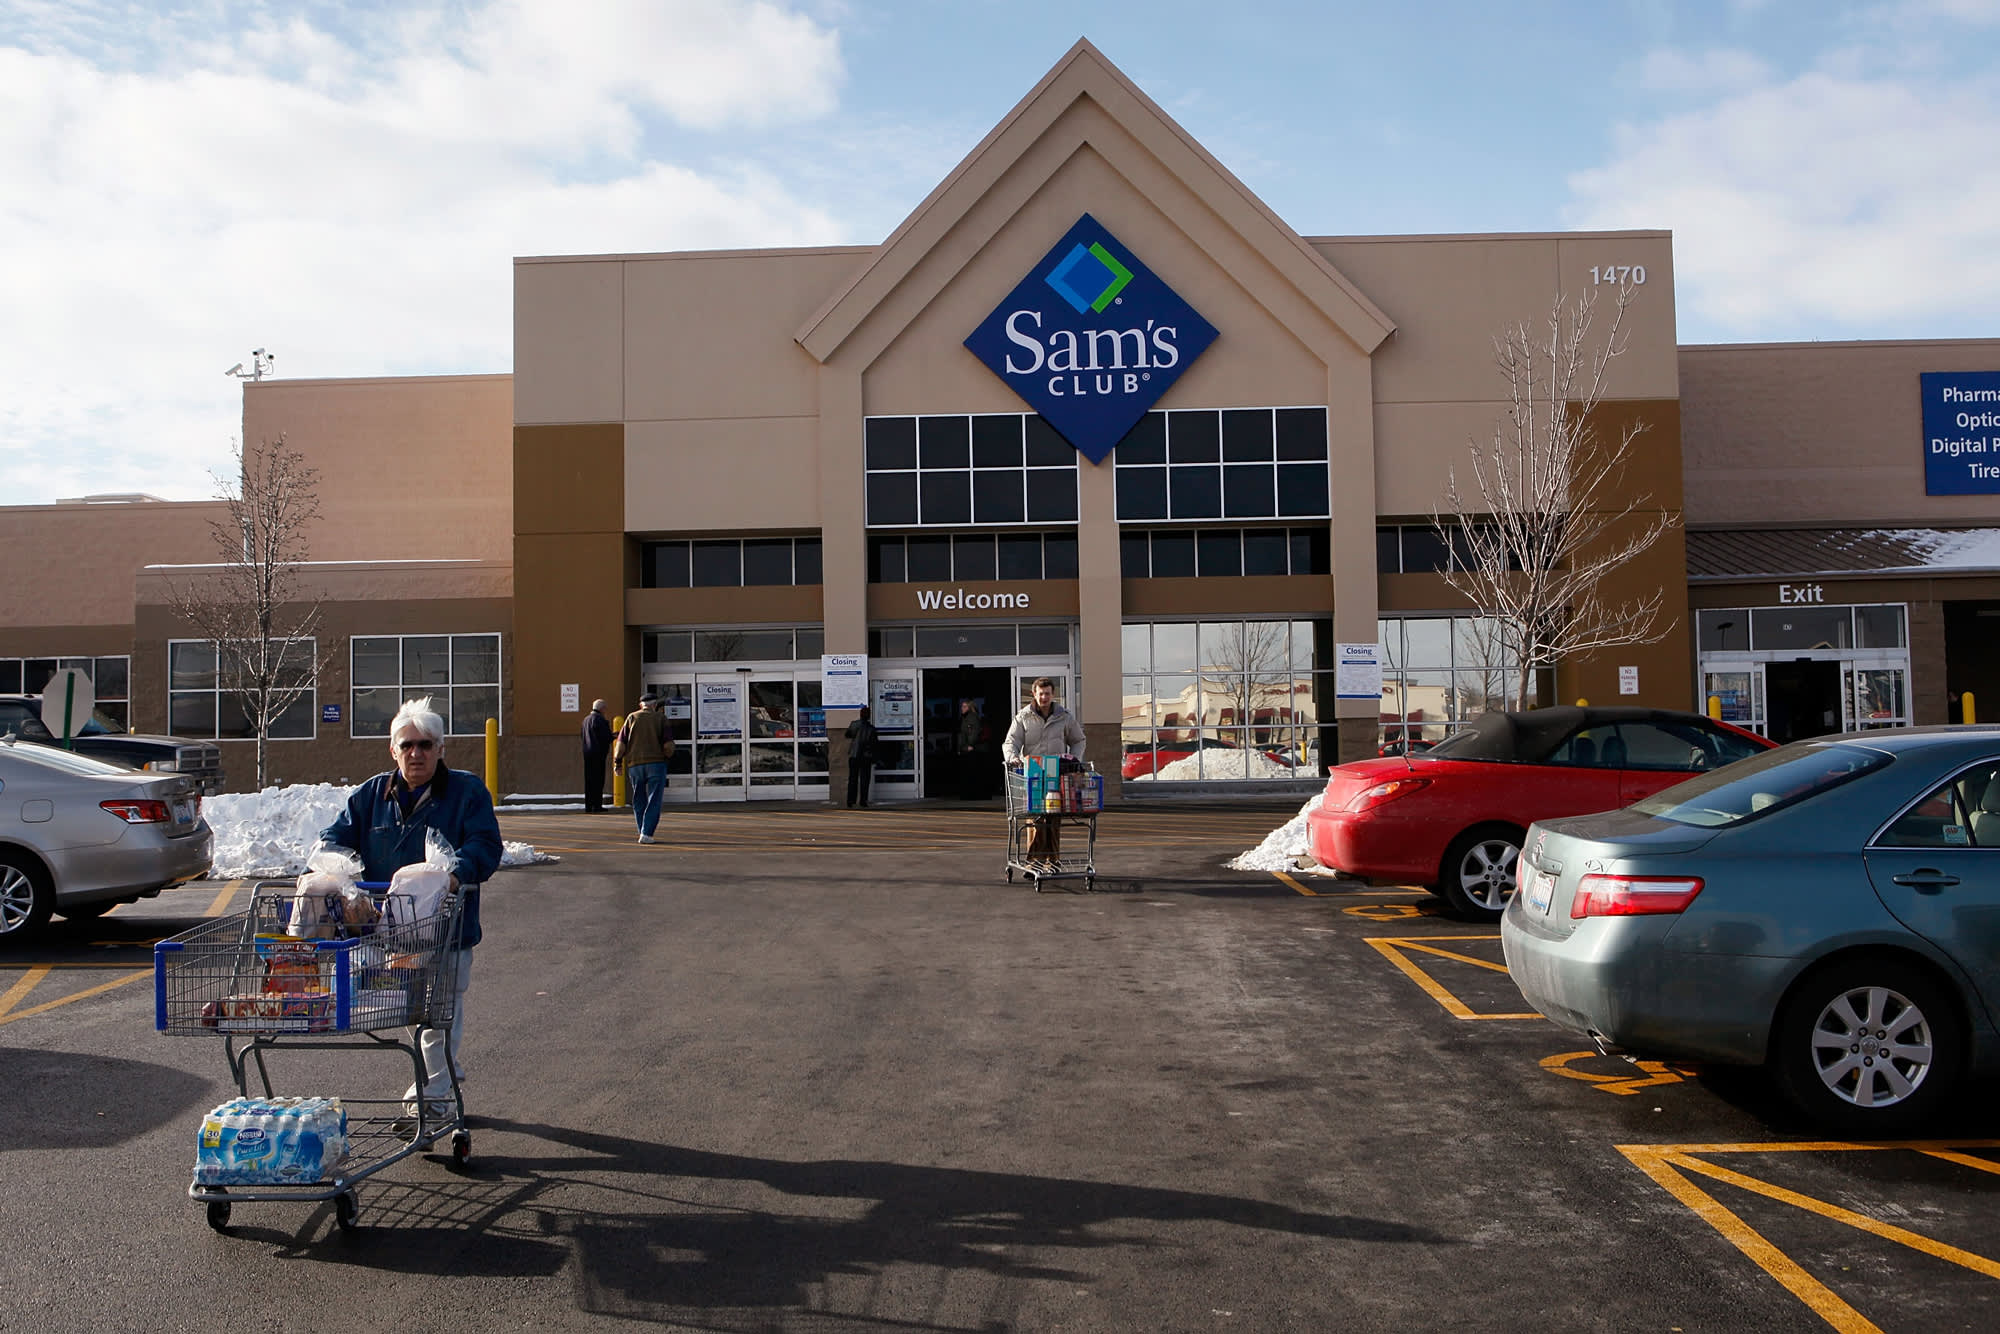 Here S A List Of Where Walmart Is Closing More Than 60 Sam S Club Stores